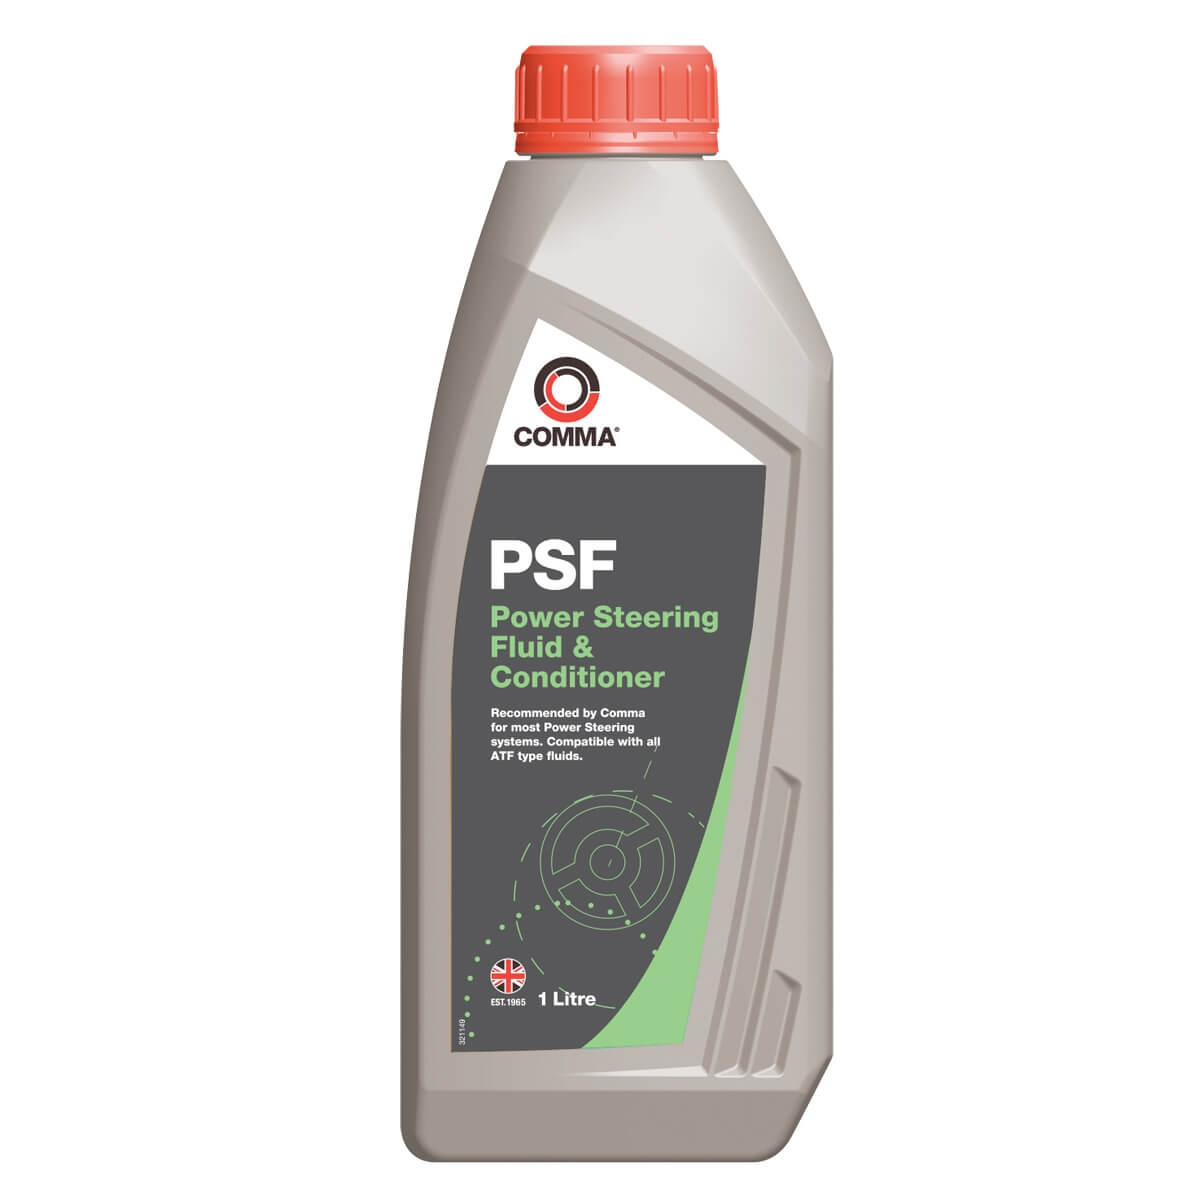 FIAT 500X Power Steering Oil